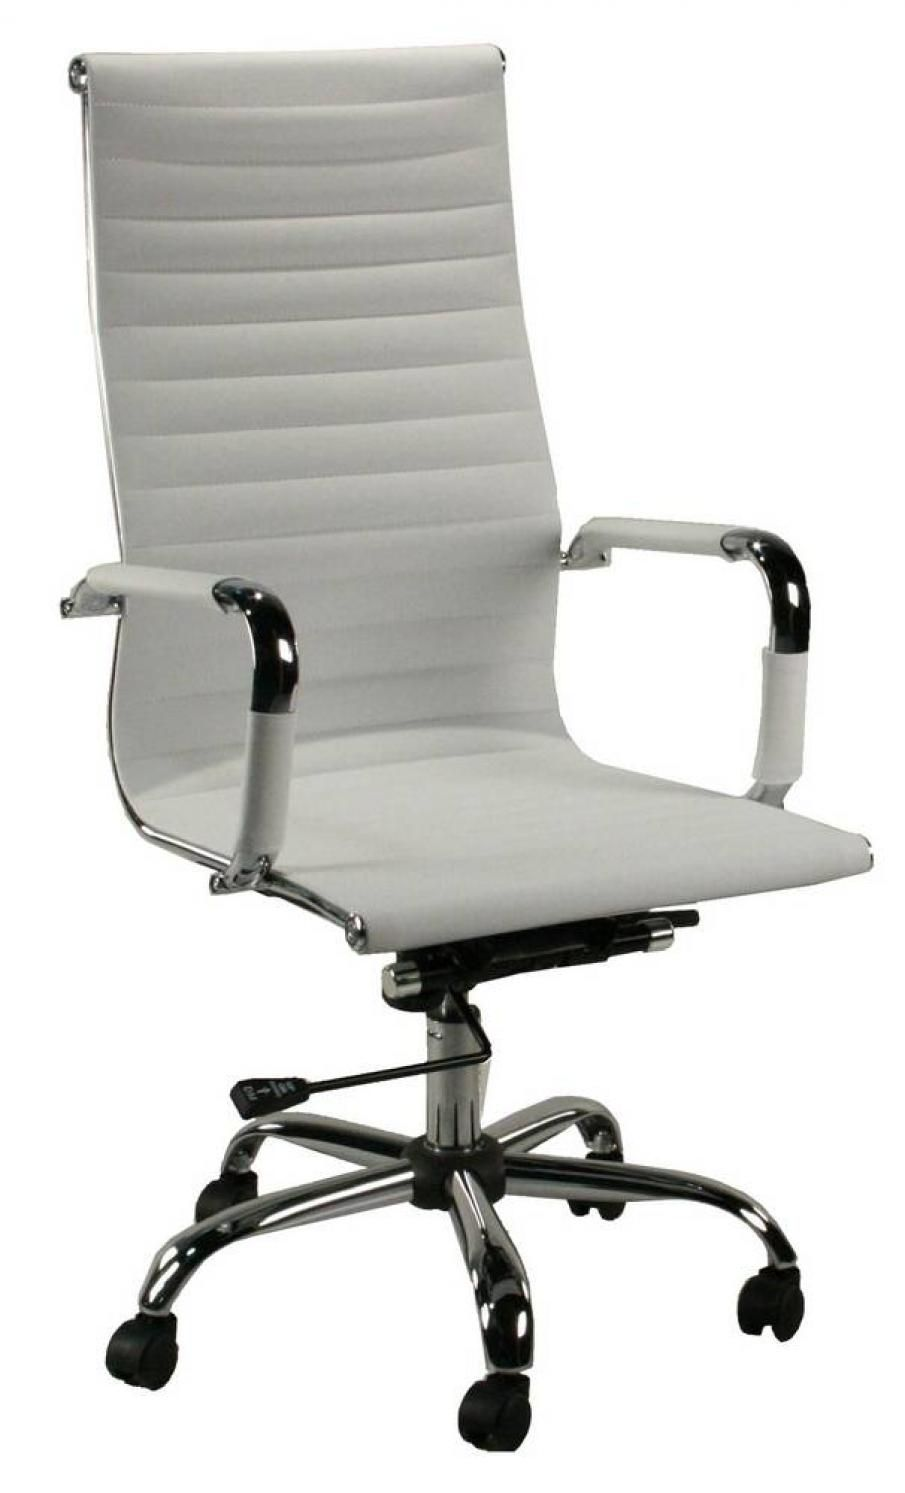 Ergonomic Reading Chair Images Of White Contemporary High Back Rolling Office Chair